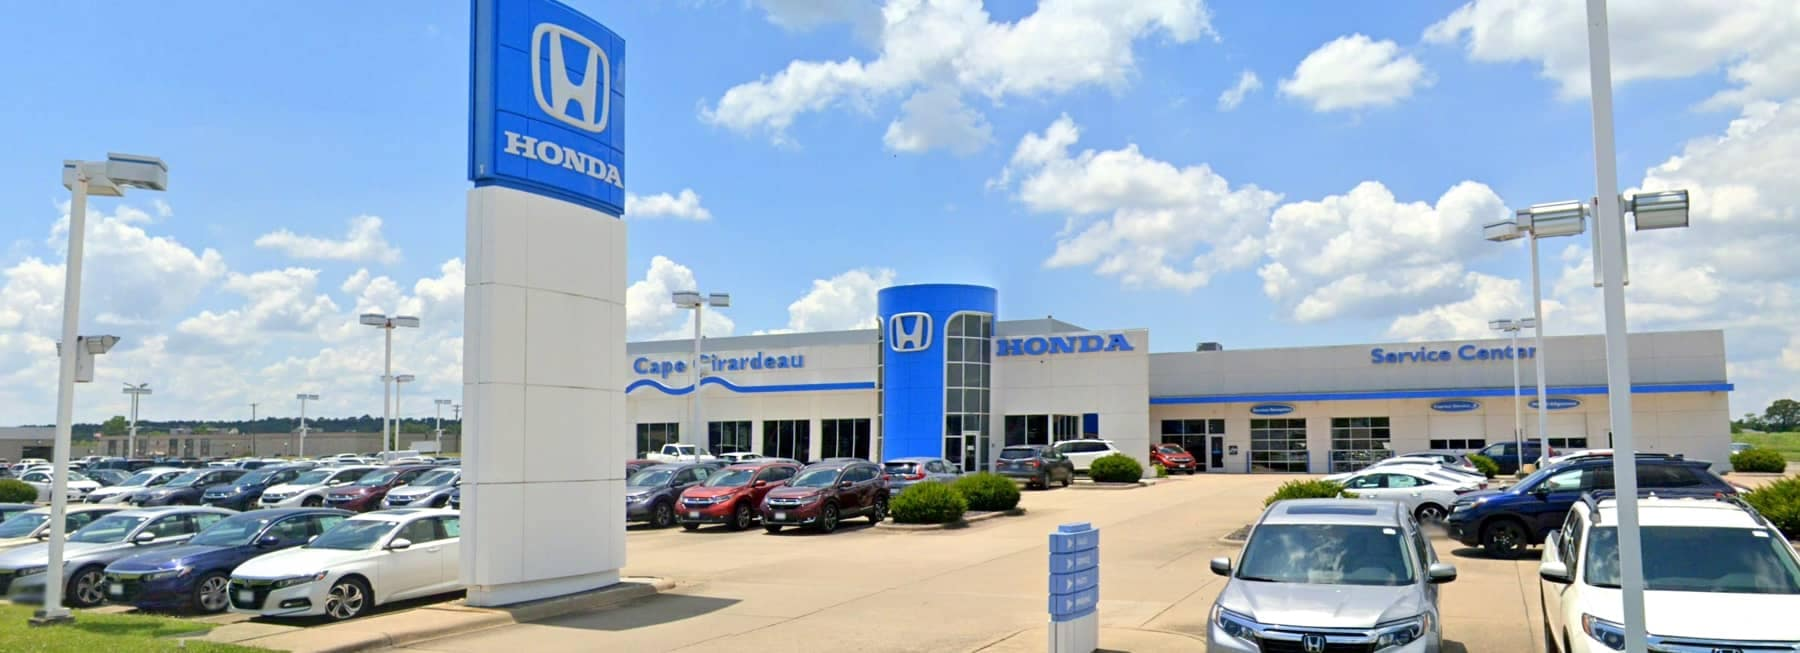 Car Dealership during the day